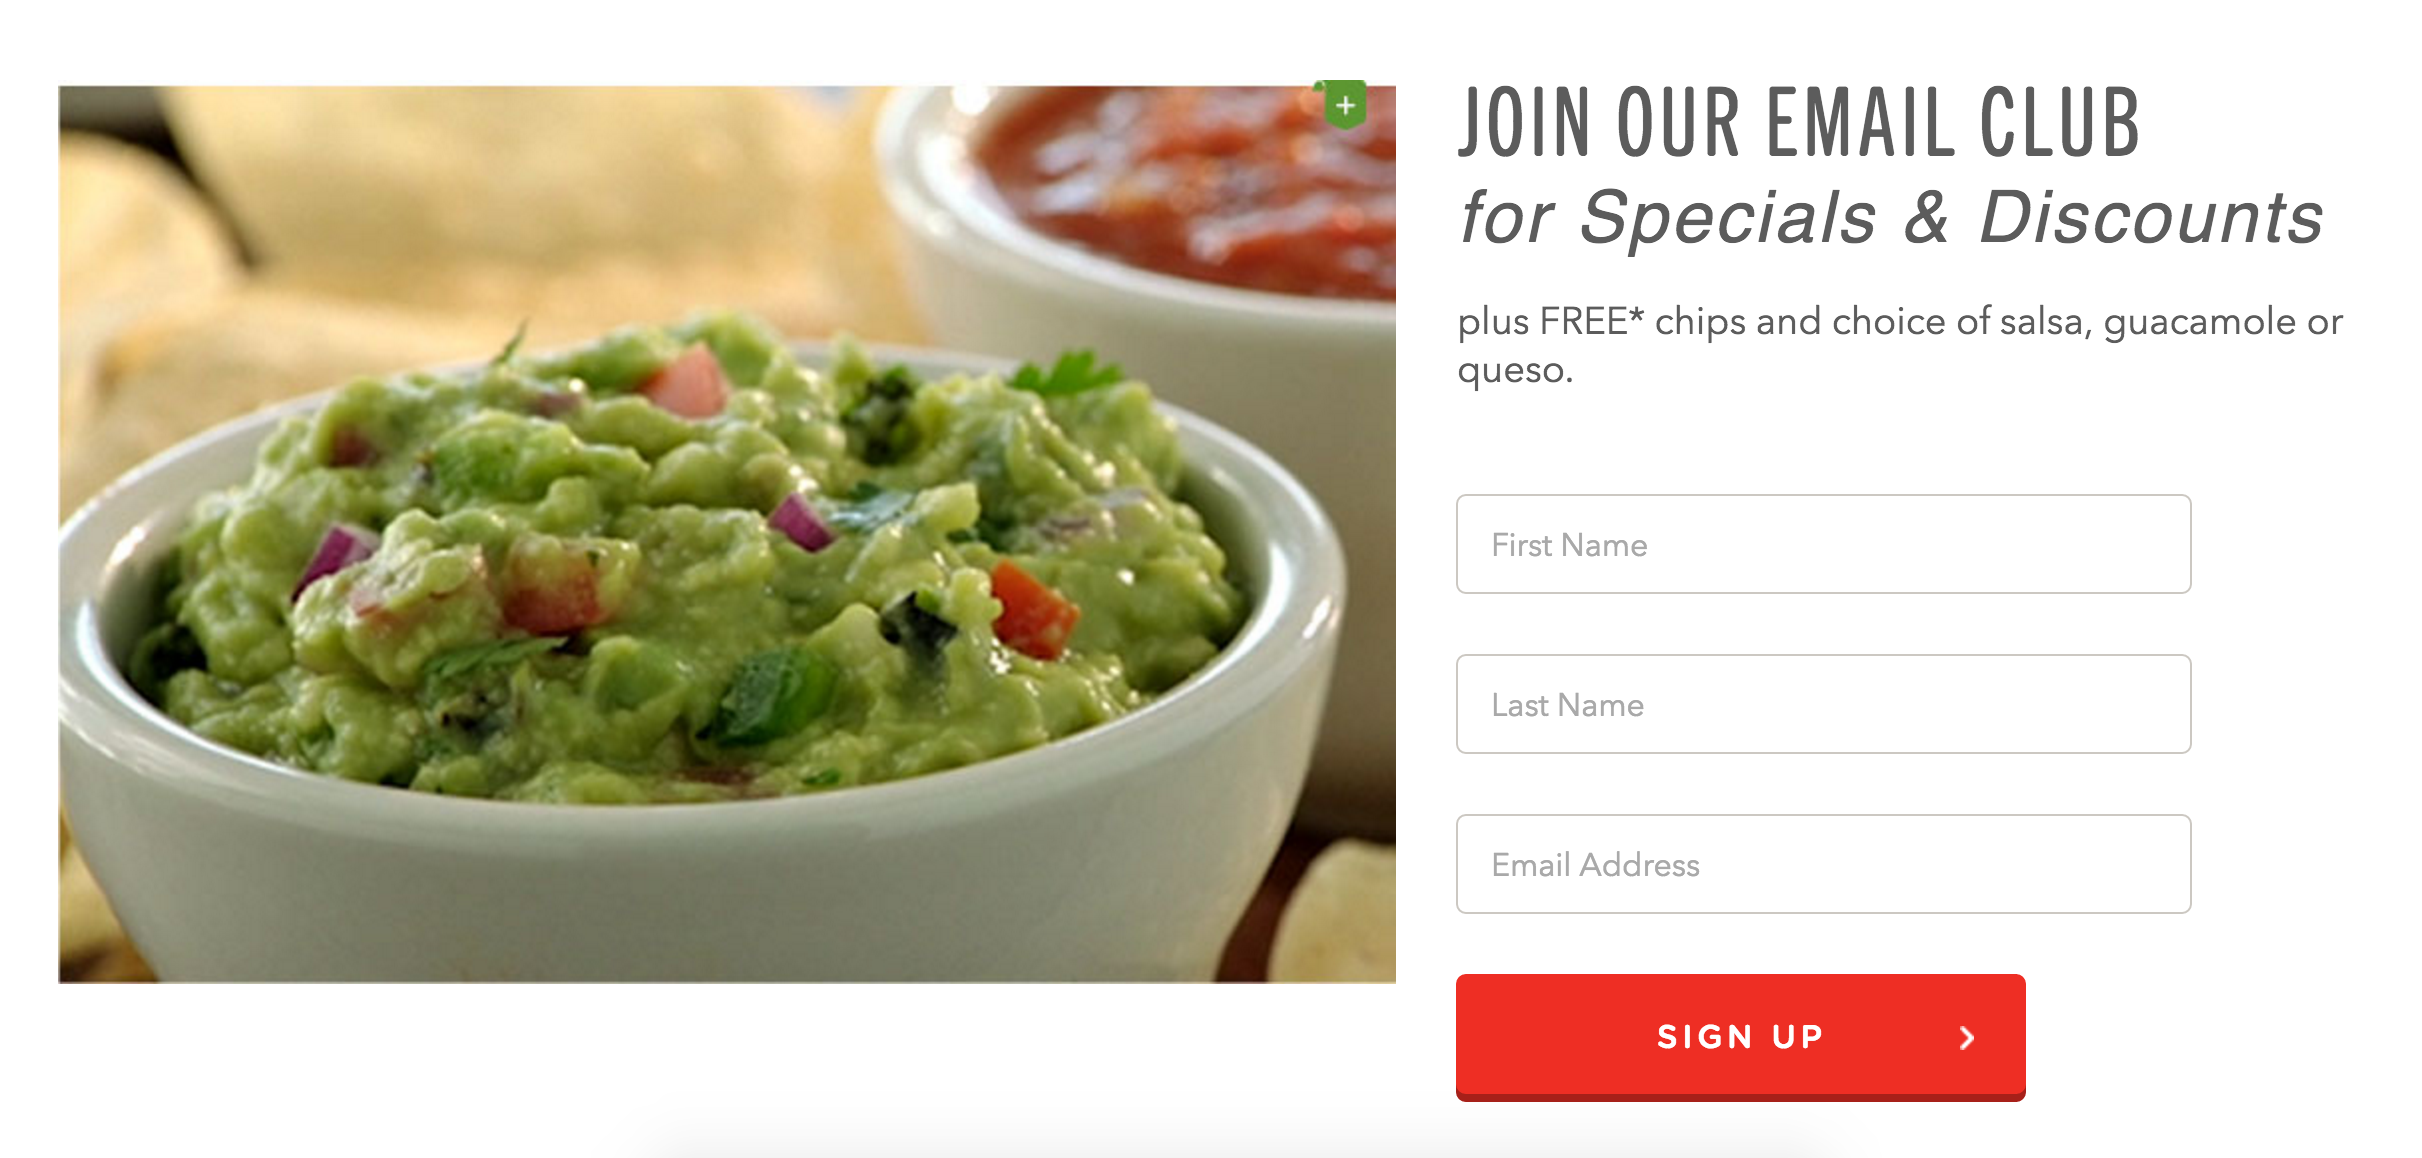 I super love guacamole, but I super hate restaurants emailing me daily, so... tough call.